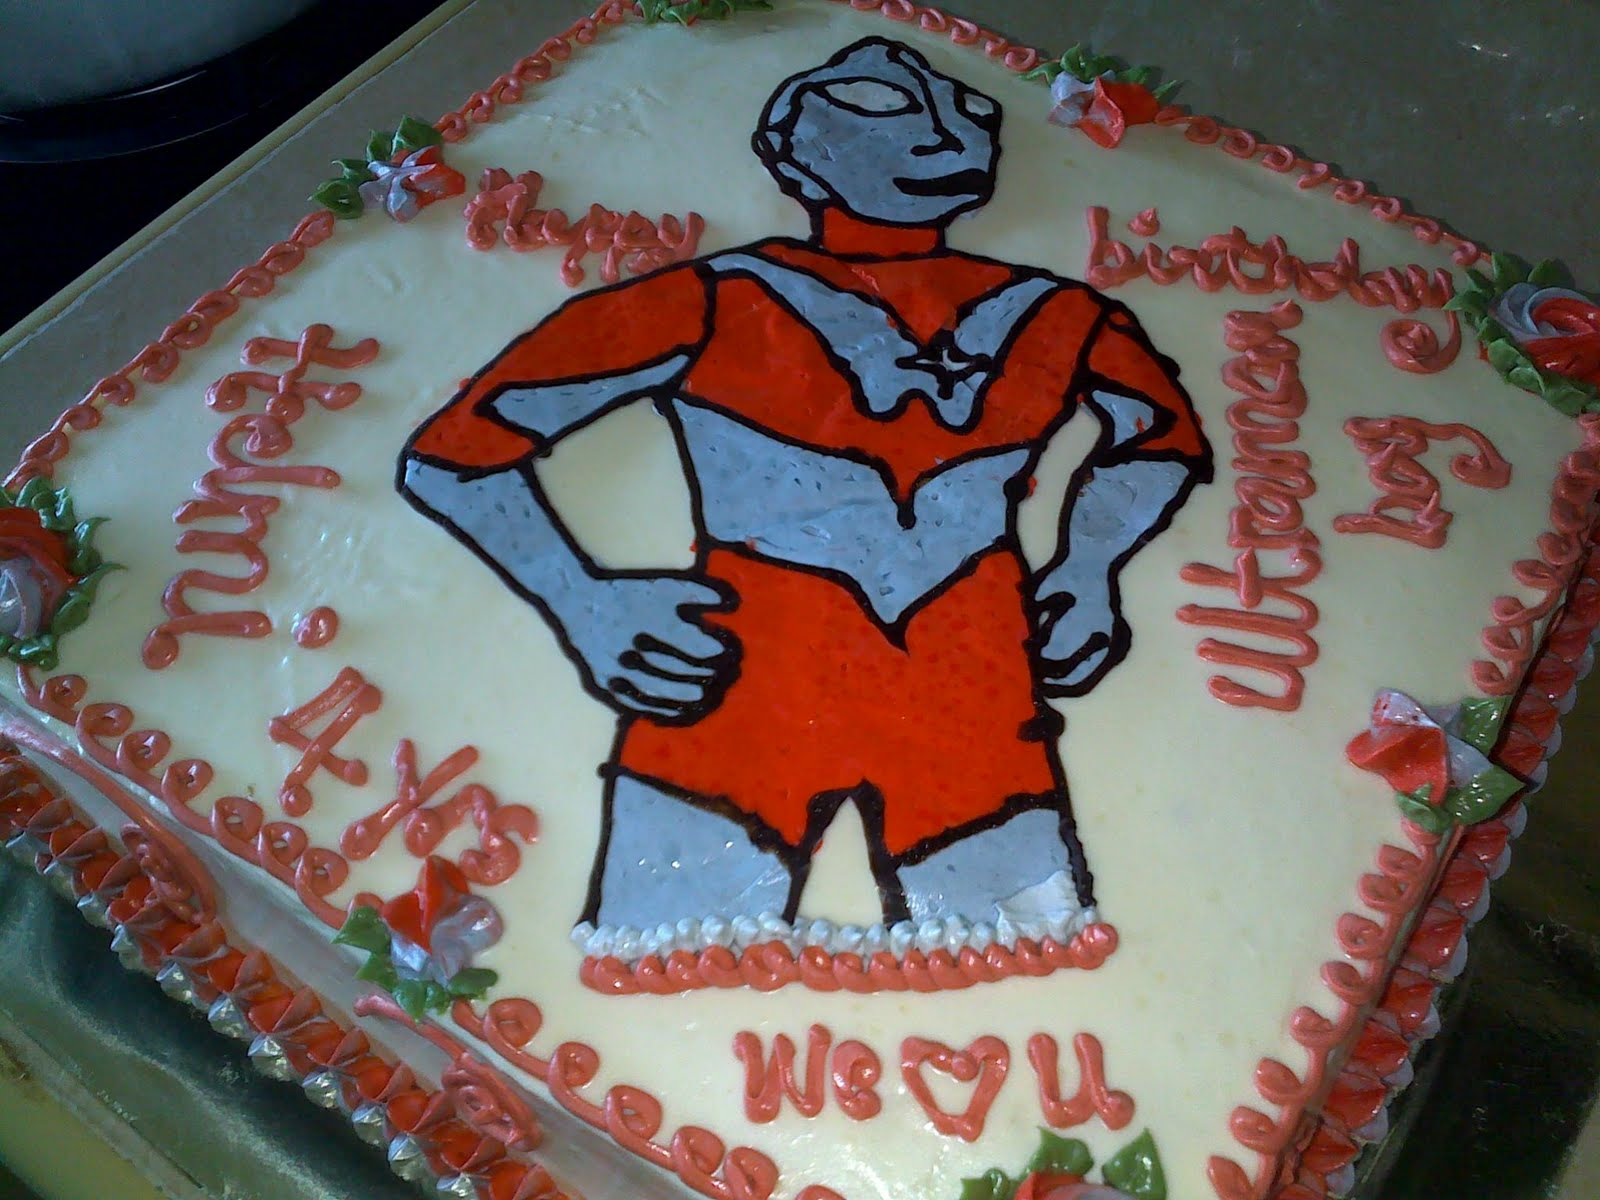 Gambar Ultraman http://mylovelyhomebakery01.blogspot.com/2010/05/blog-post_20.html